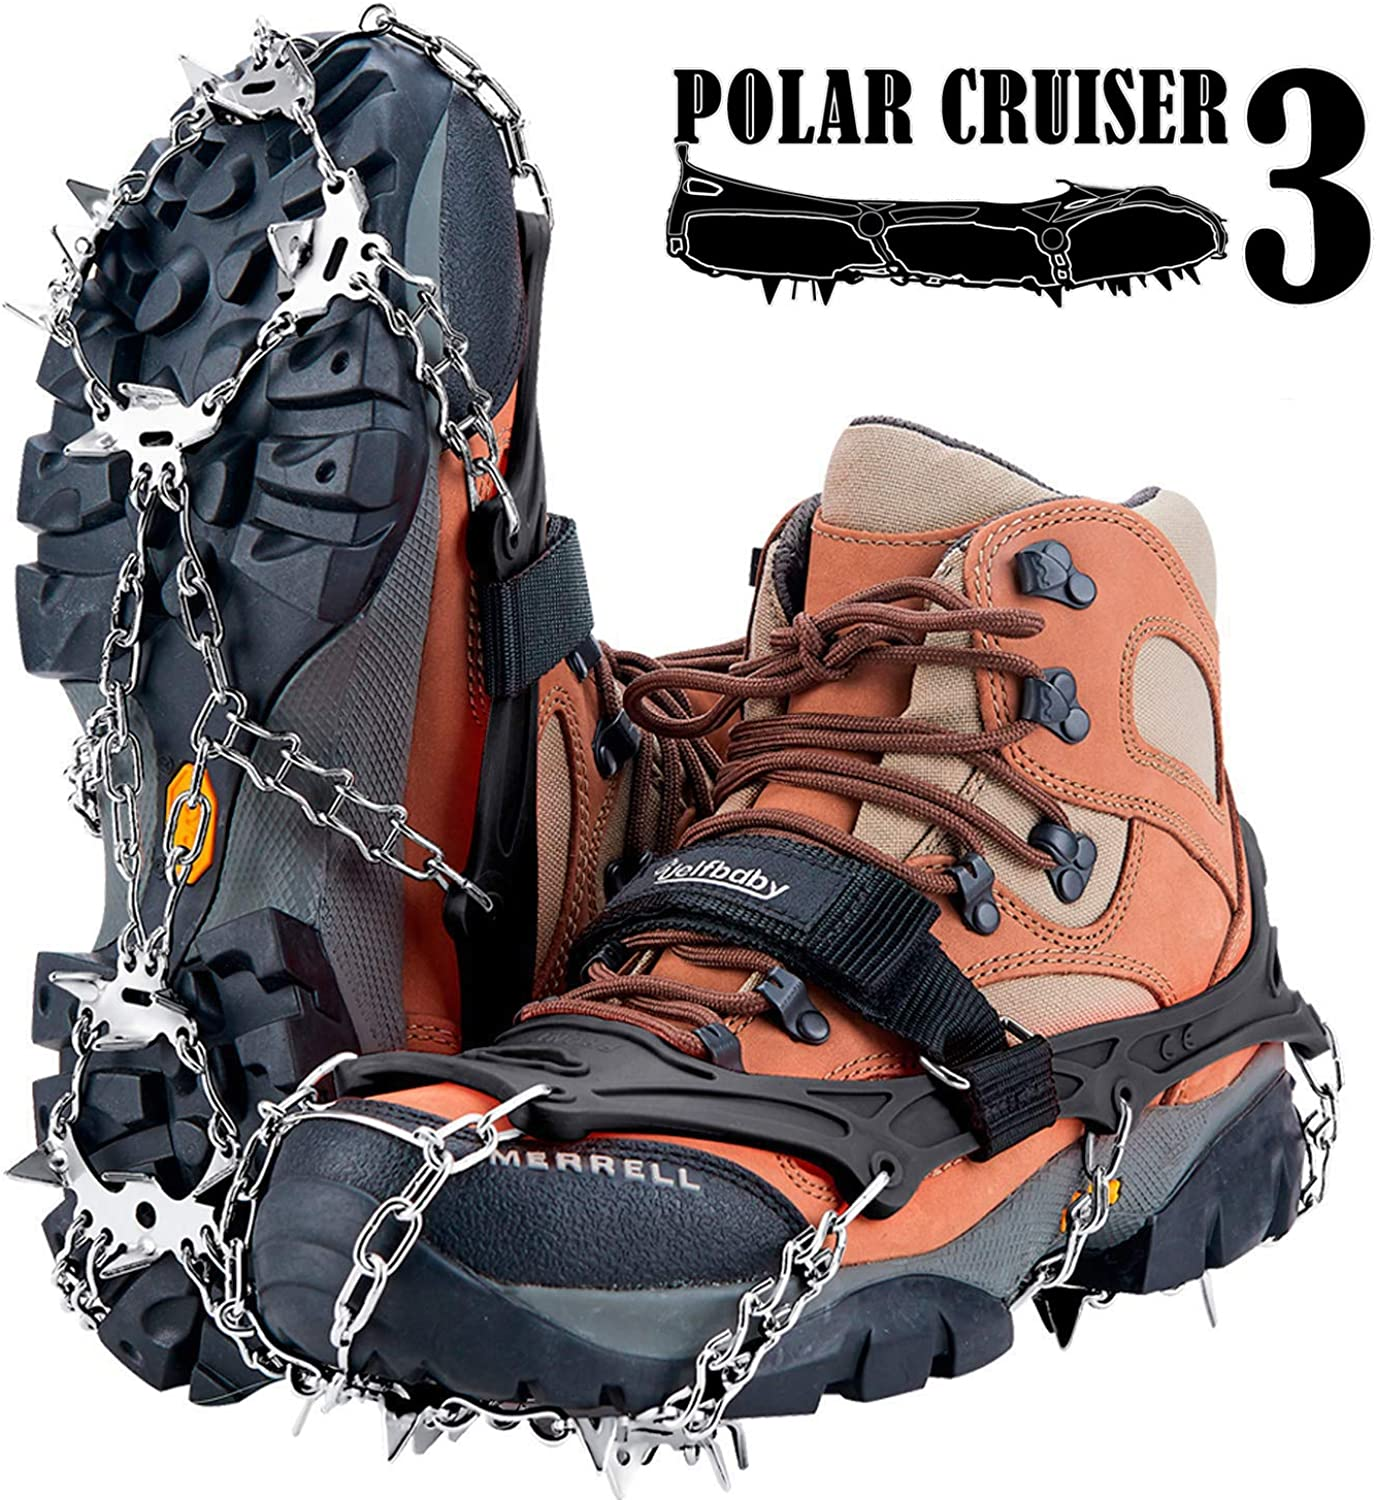 Uelfbaby Crampons Upgraded Many popular brands National uniform free shipping 19 Spikes Snow Ice Grips Cle Traction